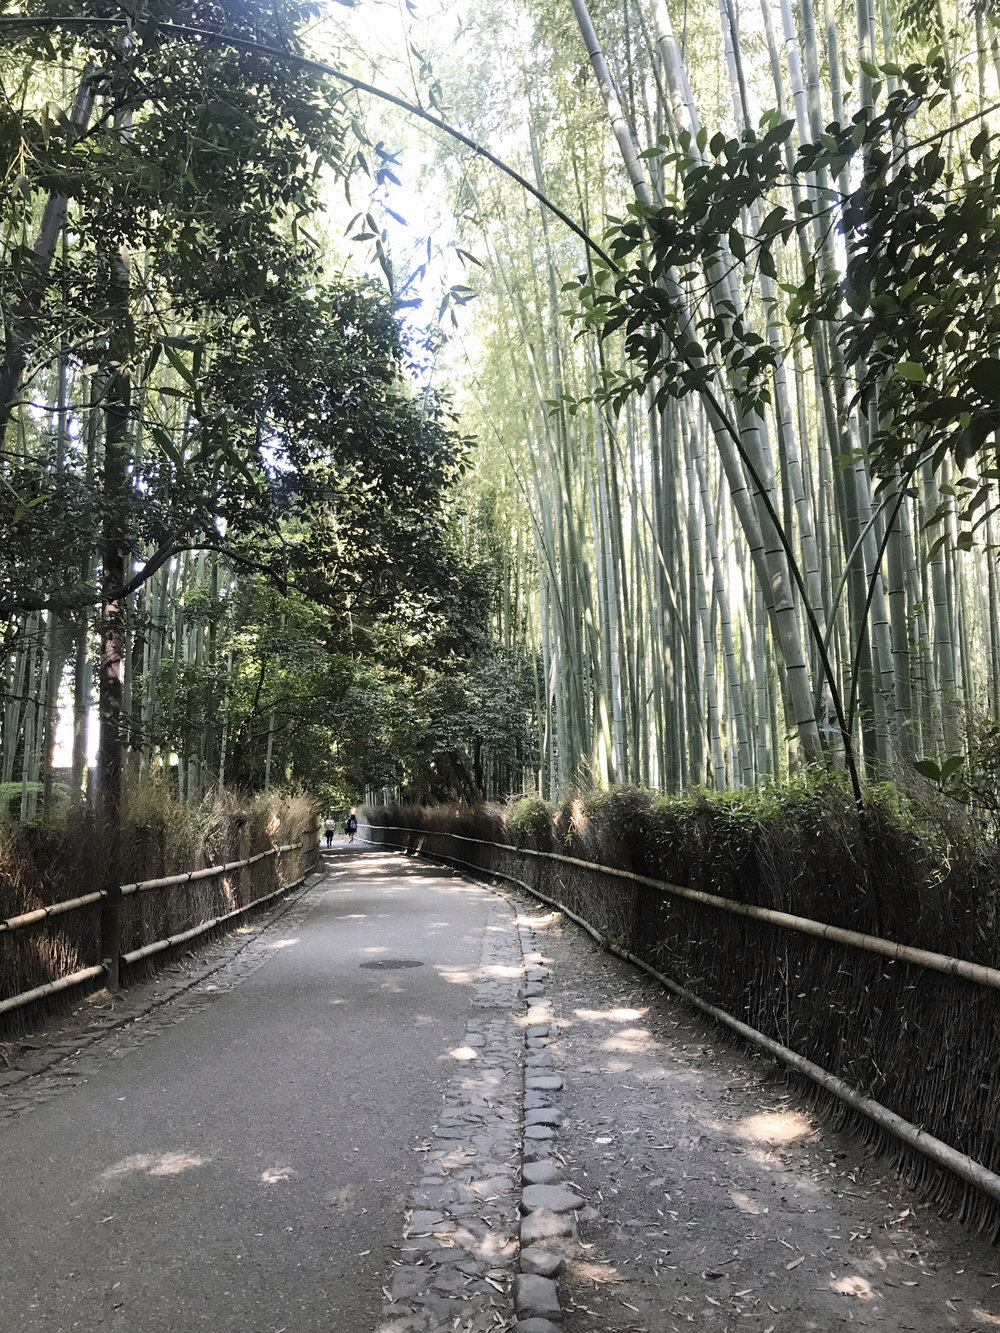 Bamboo Grove early in the morning